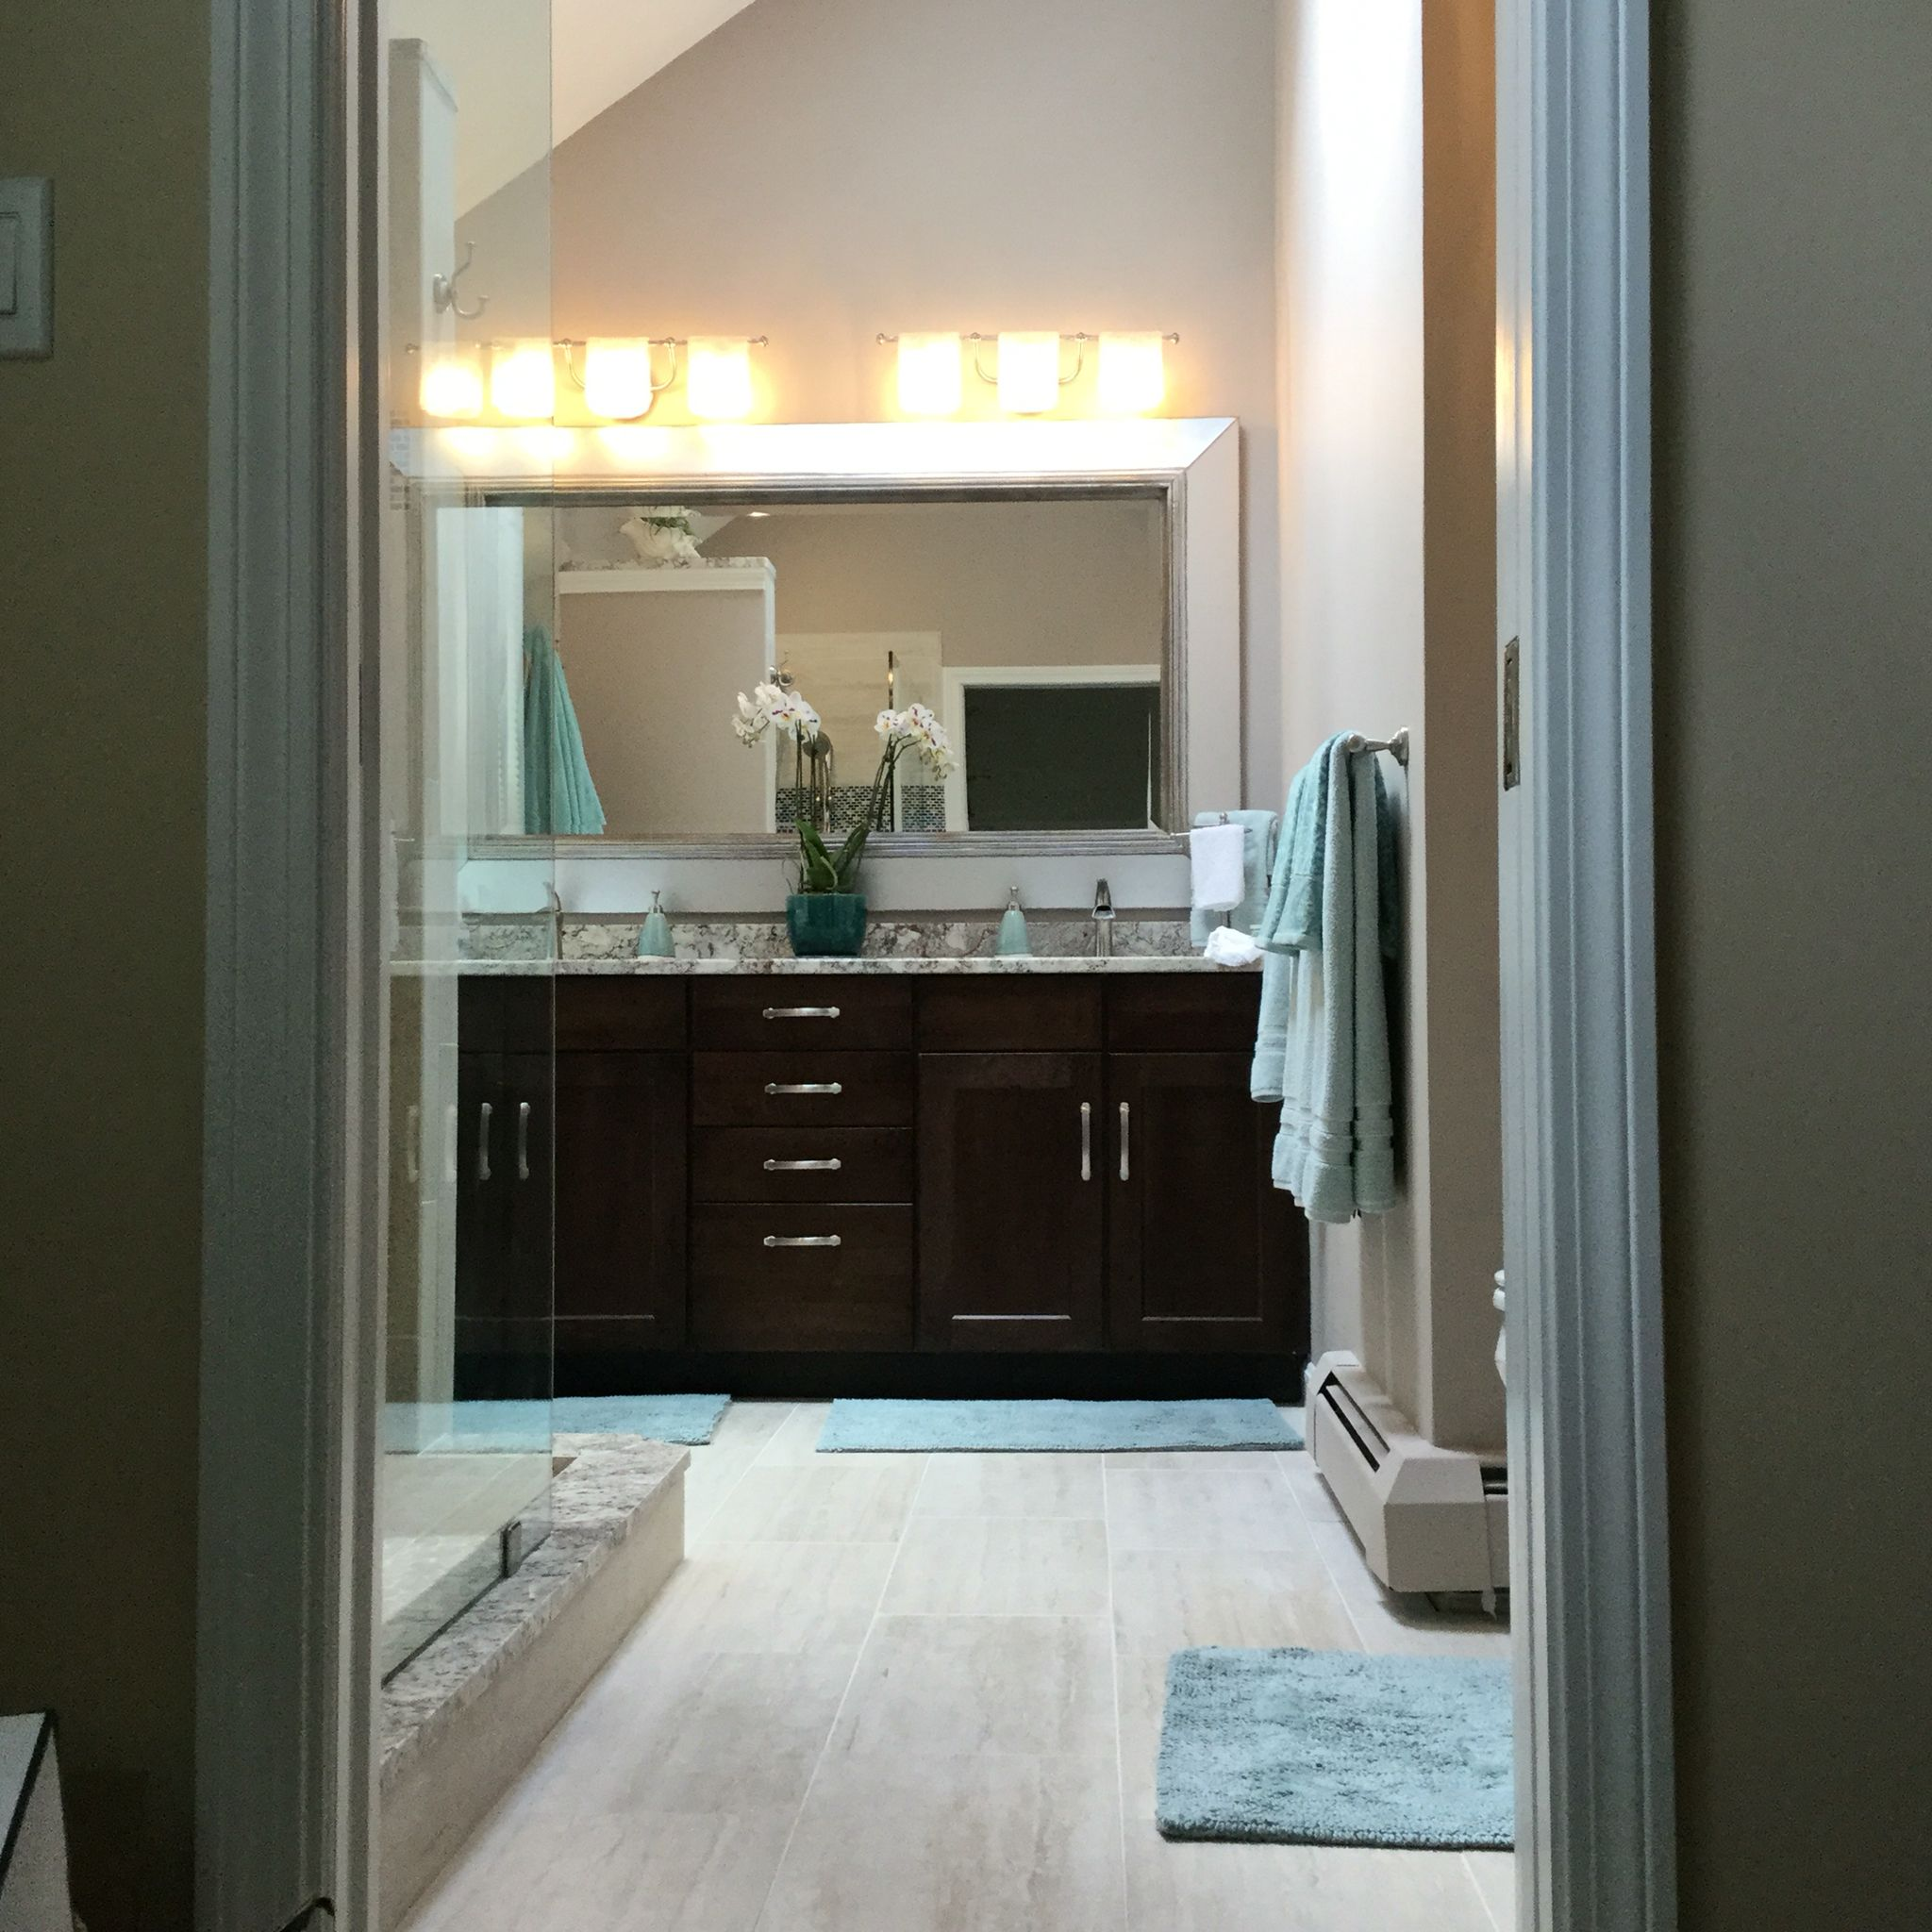 Master bath hardware echoes curves in lighting | Ideas for the House ...